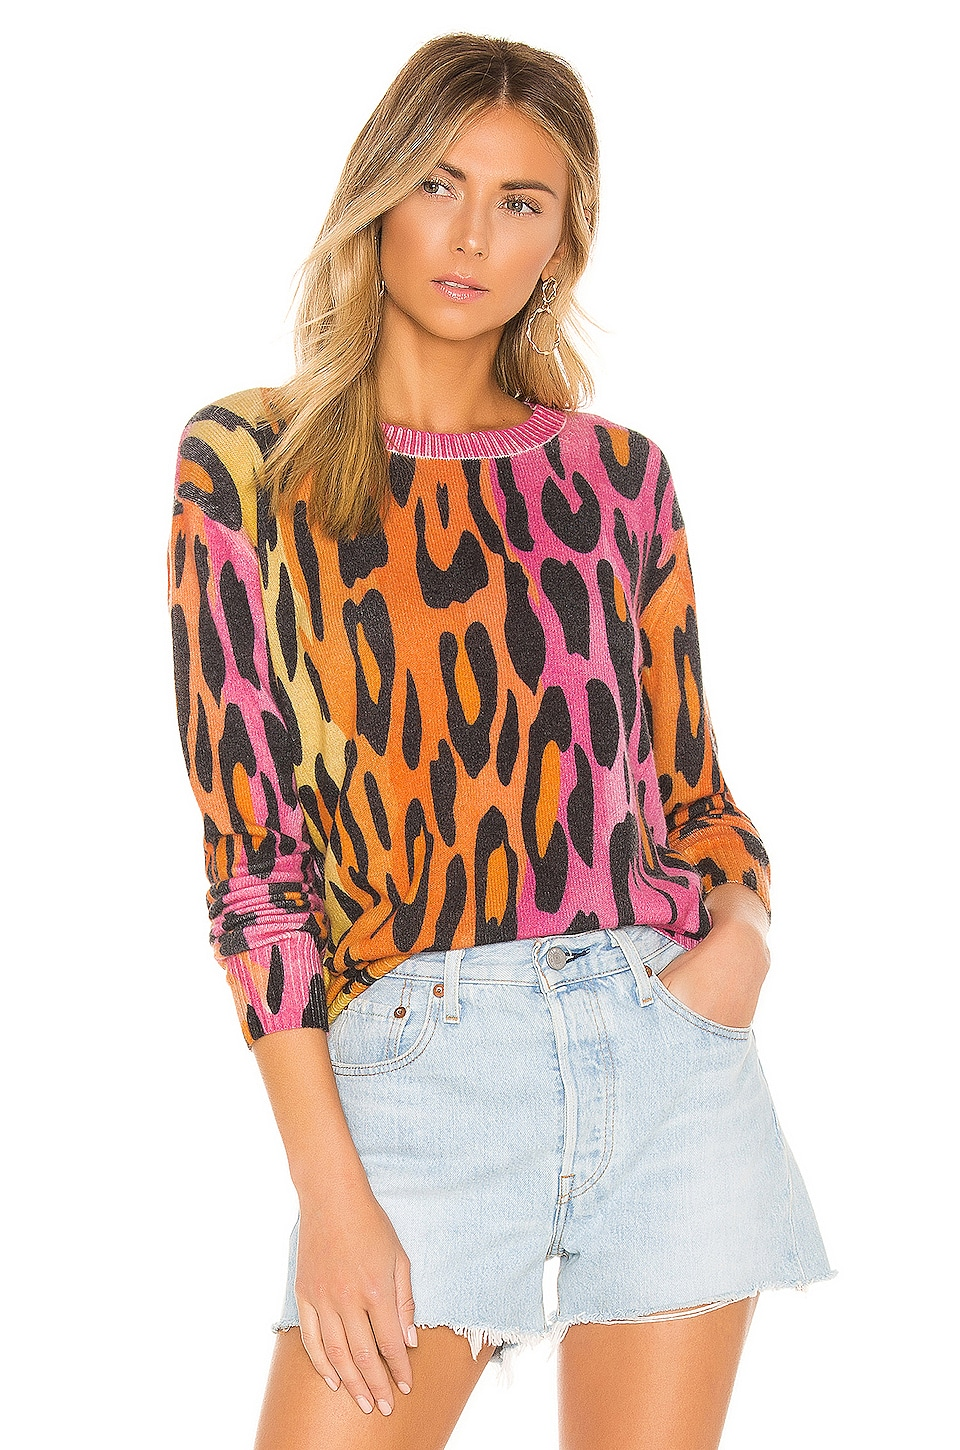 Autumn Cashmere Printed Ombre Leopard Crew in Warm Combo